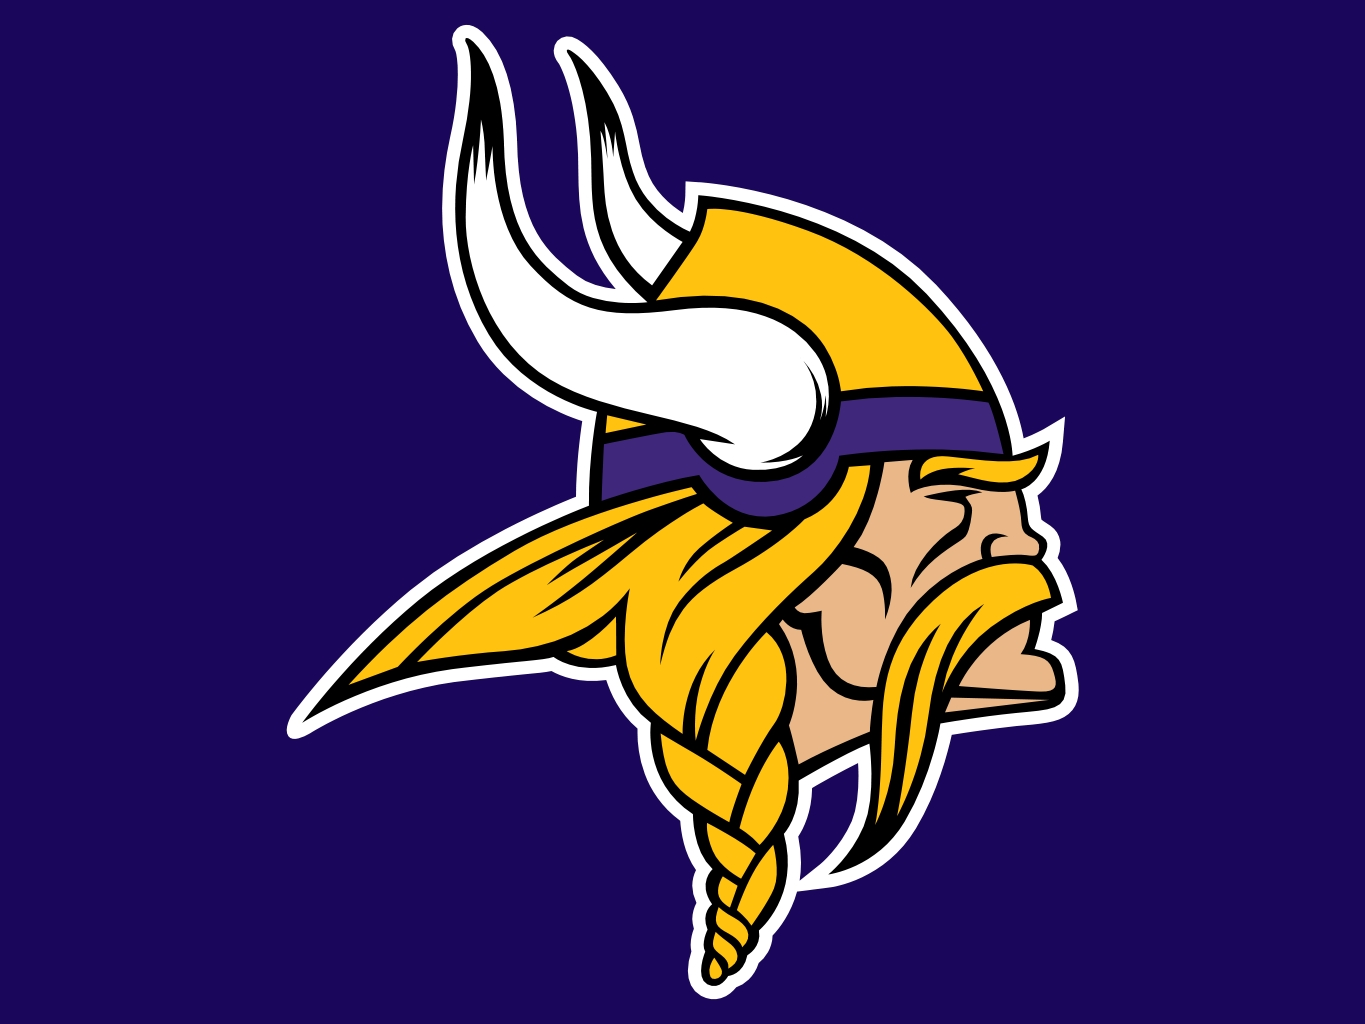 Free download minnesota vikings logo [1365x1024] for your.